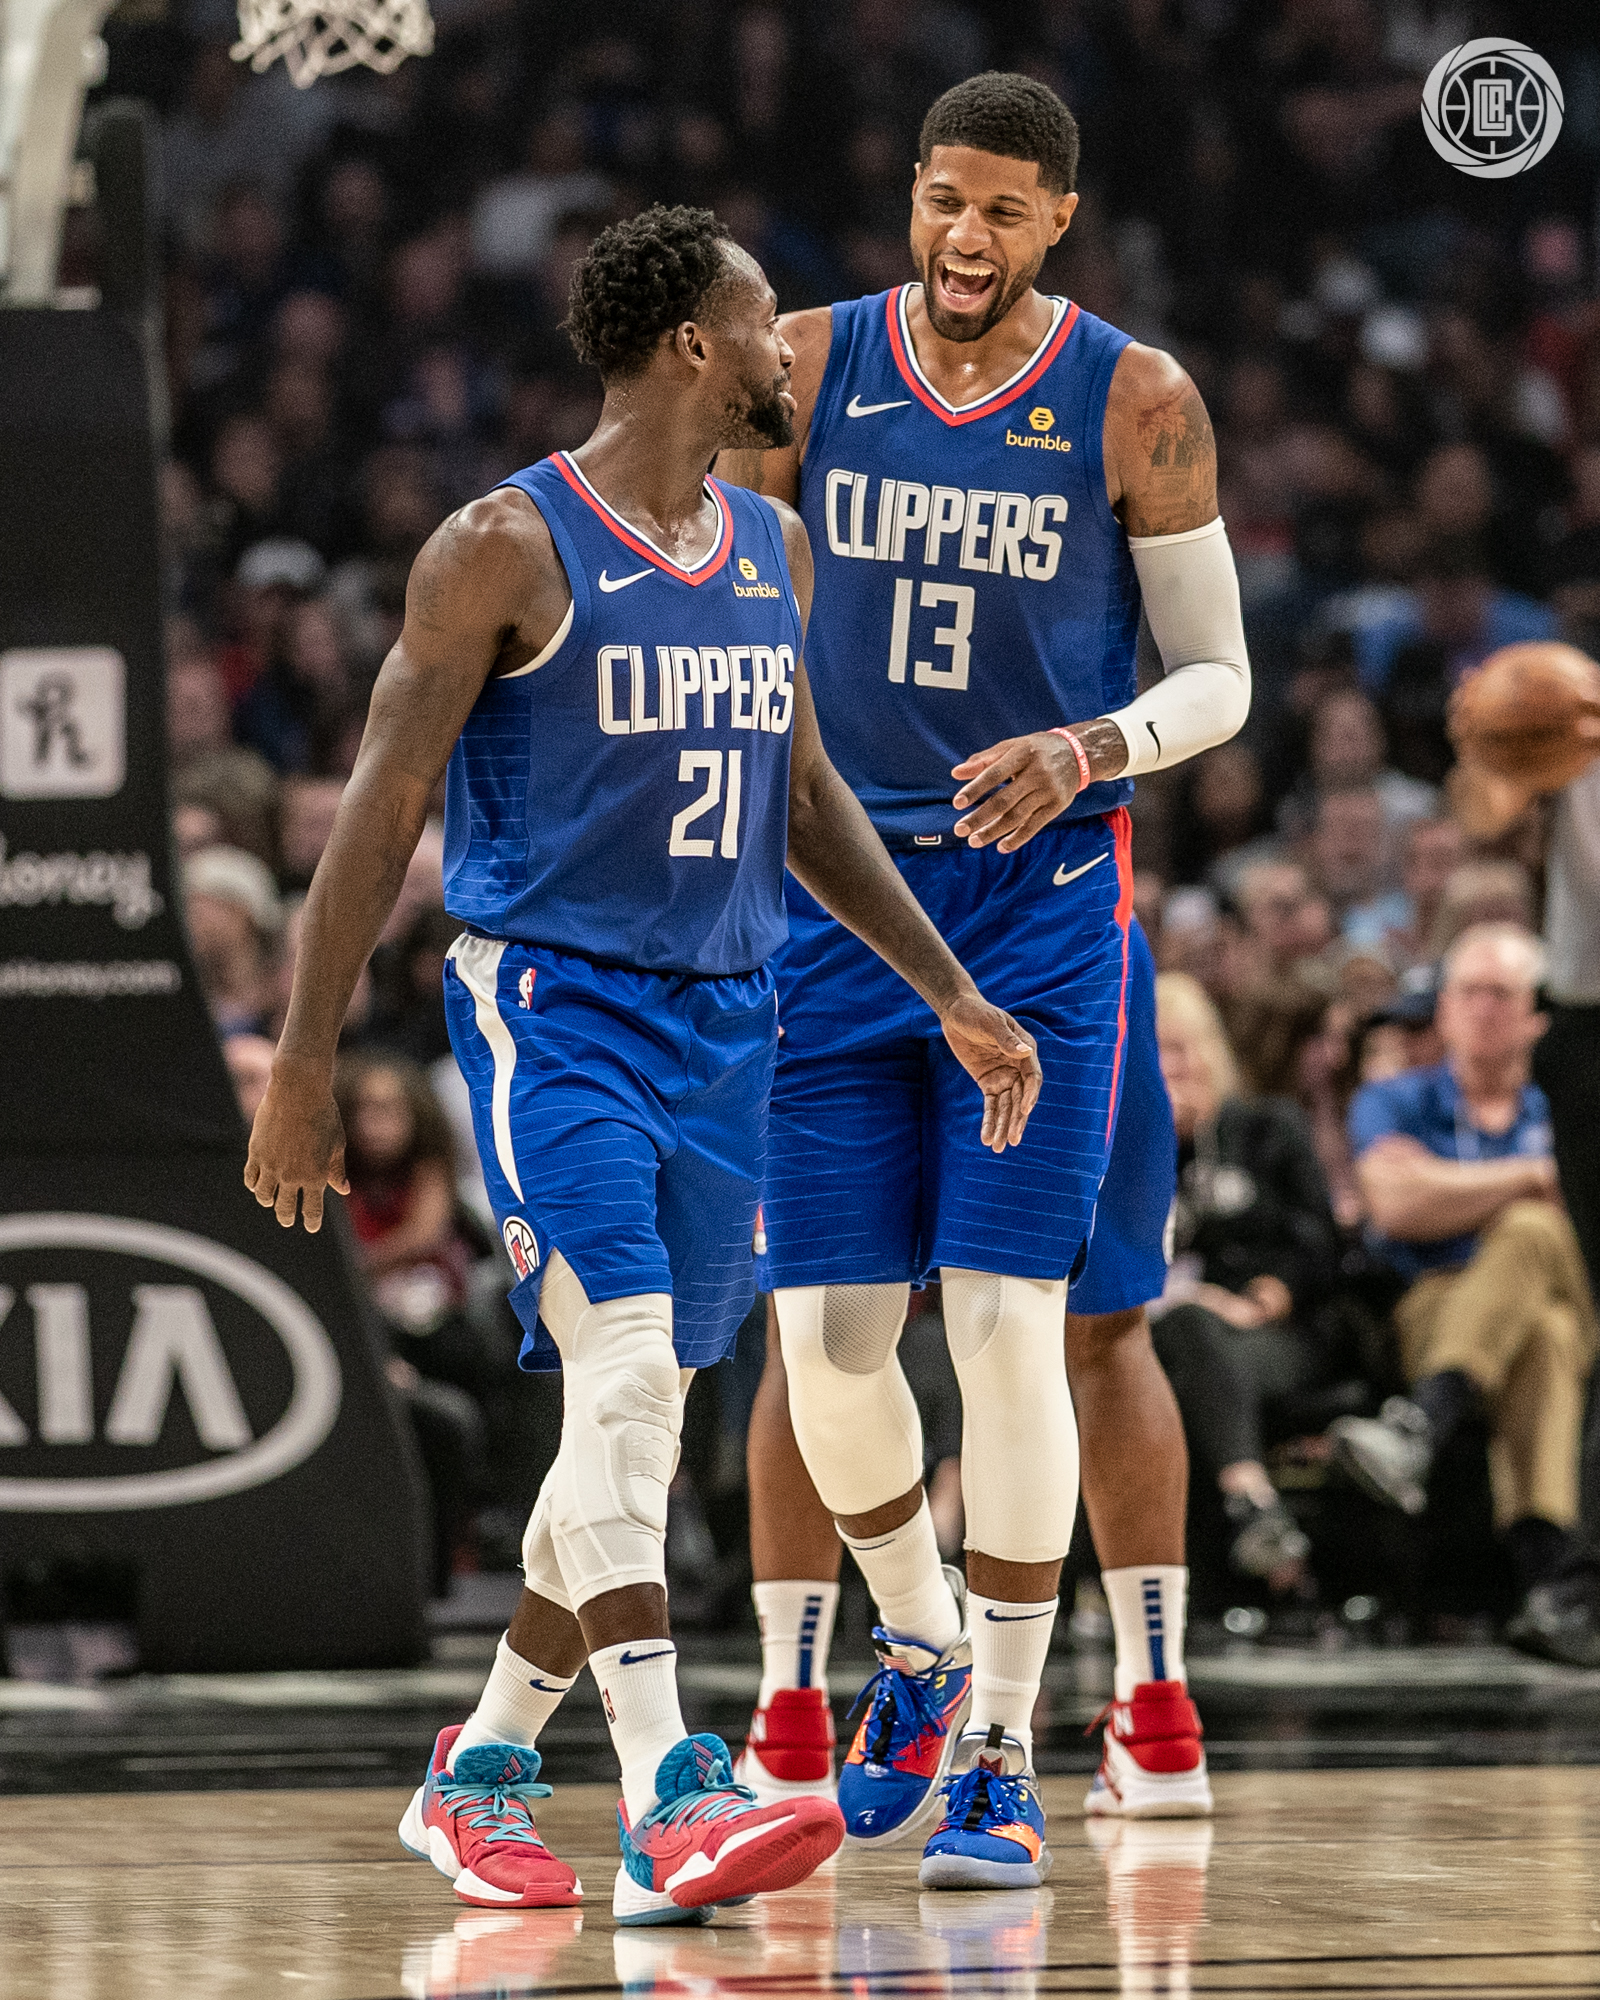 The Clippers' Orlando 2020 NBA Season Schedule Has Been Released